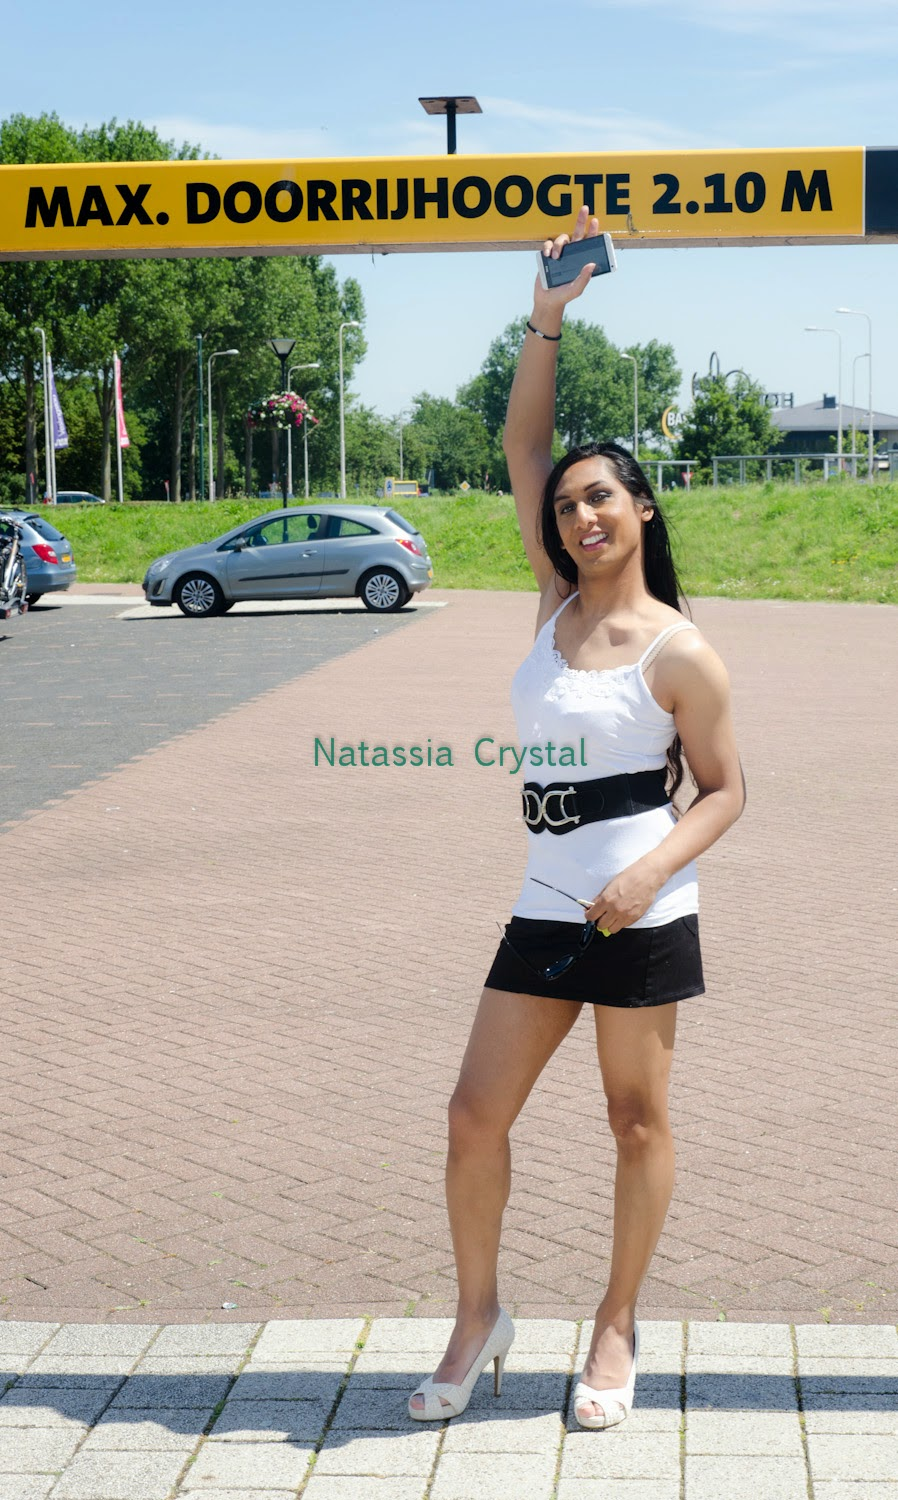 Natassia Crystal natcrys, short black skirt, white top, outside at parking place